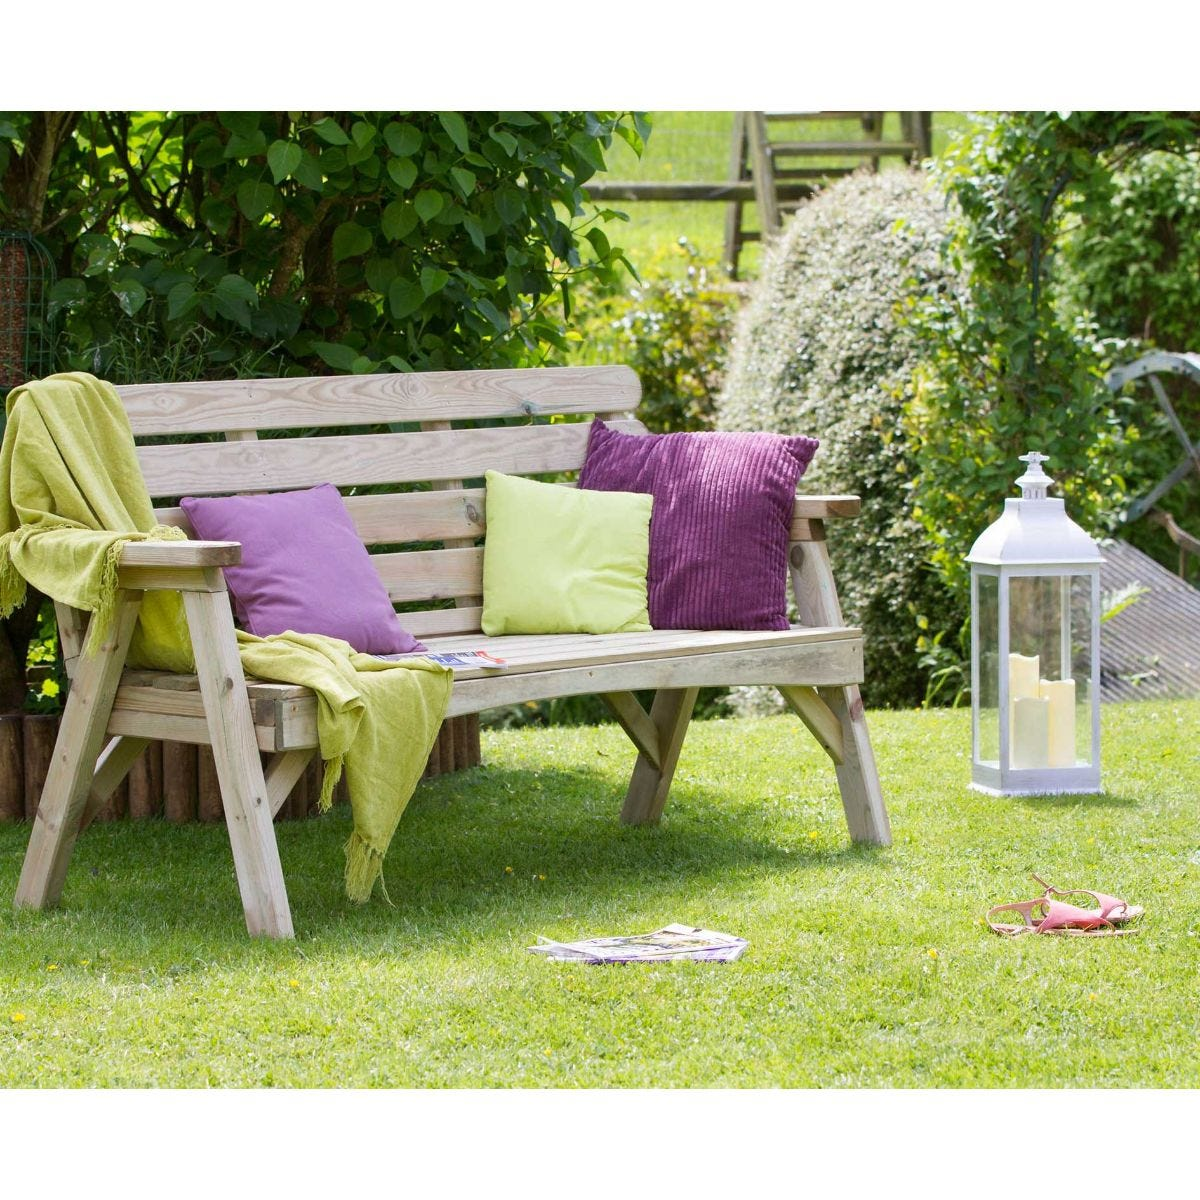 Zest4Leisure Abbey 3 Seater Garden Bench